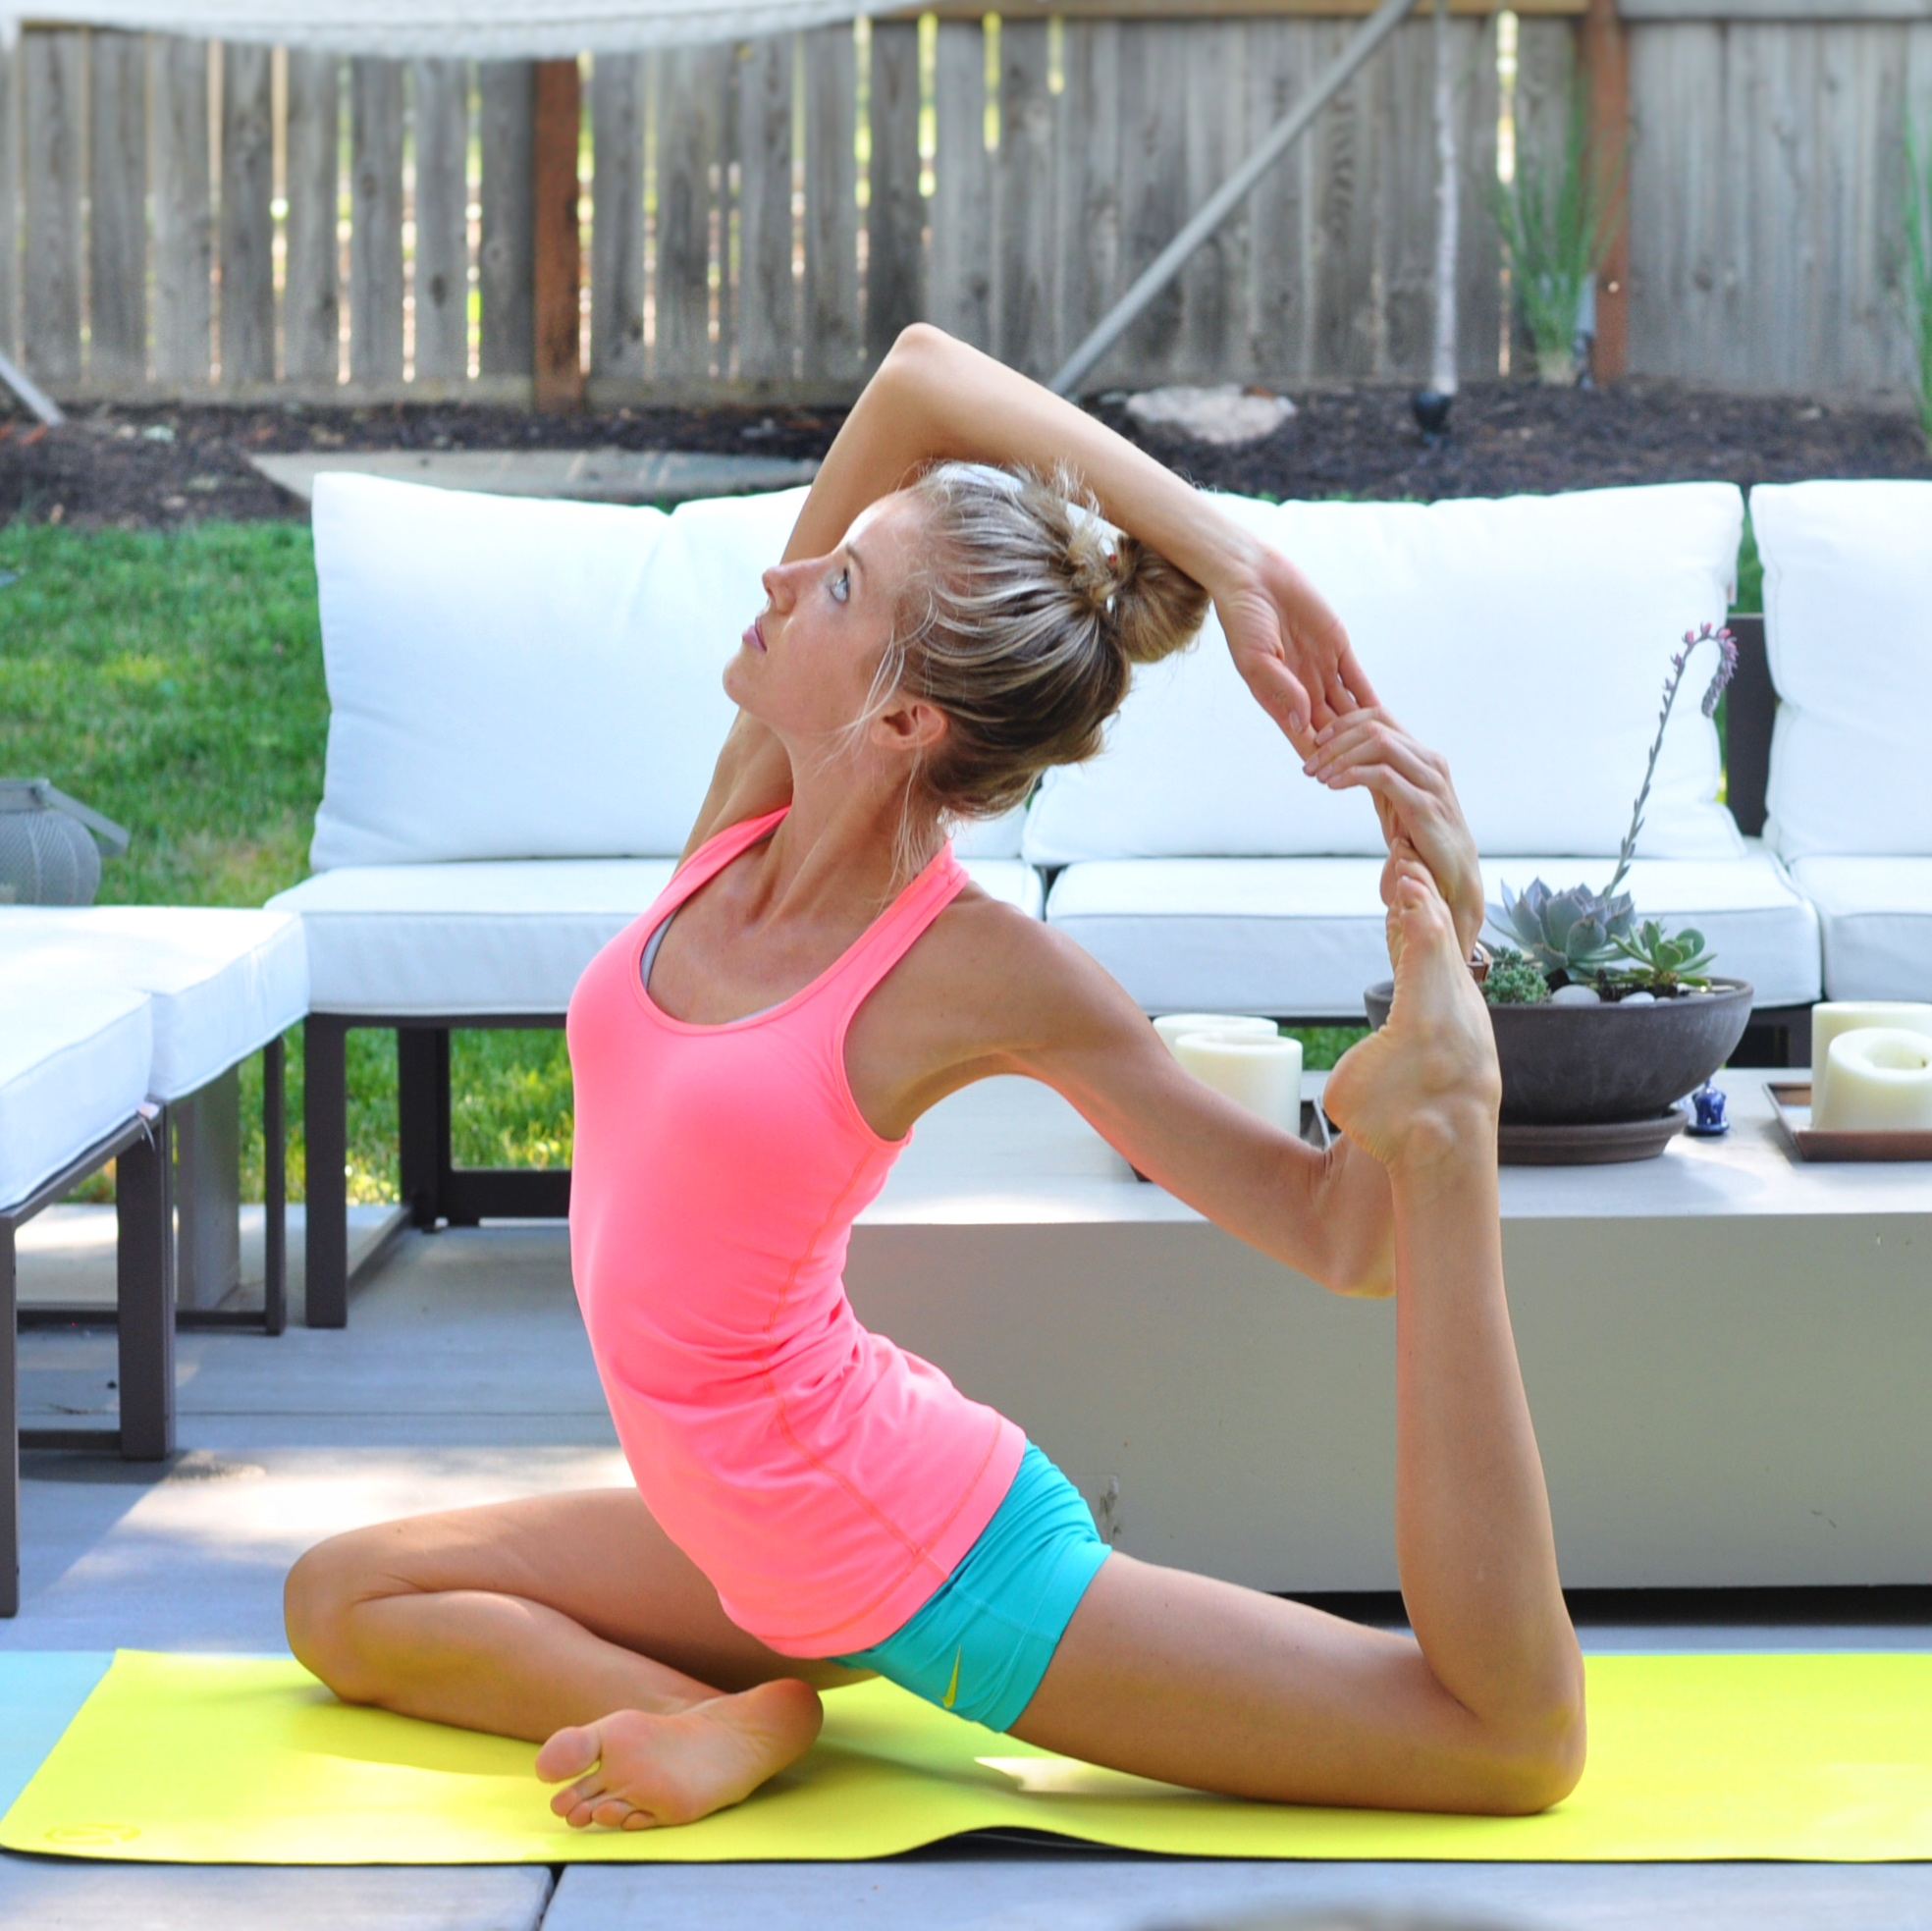 ☼ Fitness + Yoga Sessions - Exercises you can fit in anywhere, anytime + outdoor yoga on the island